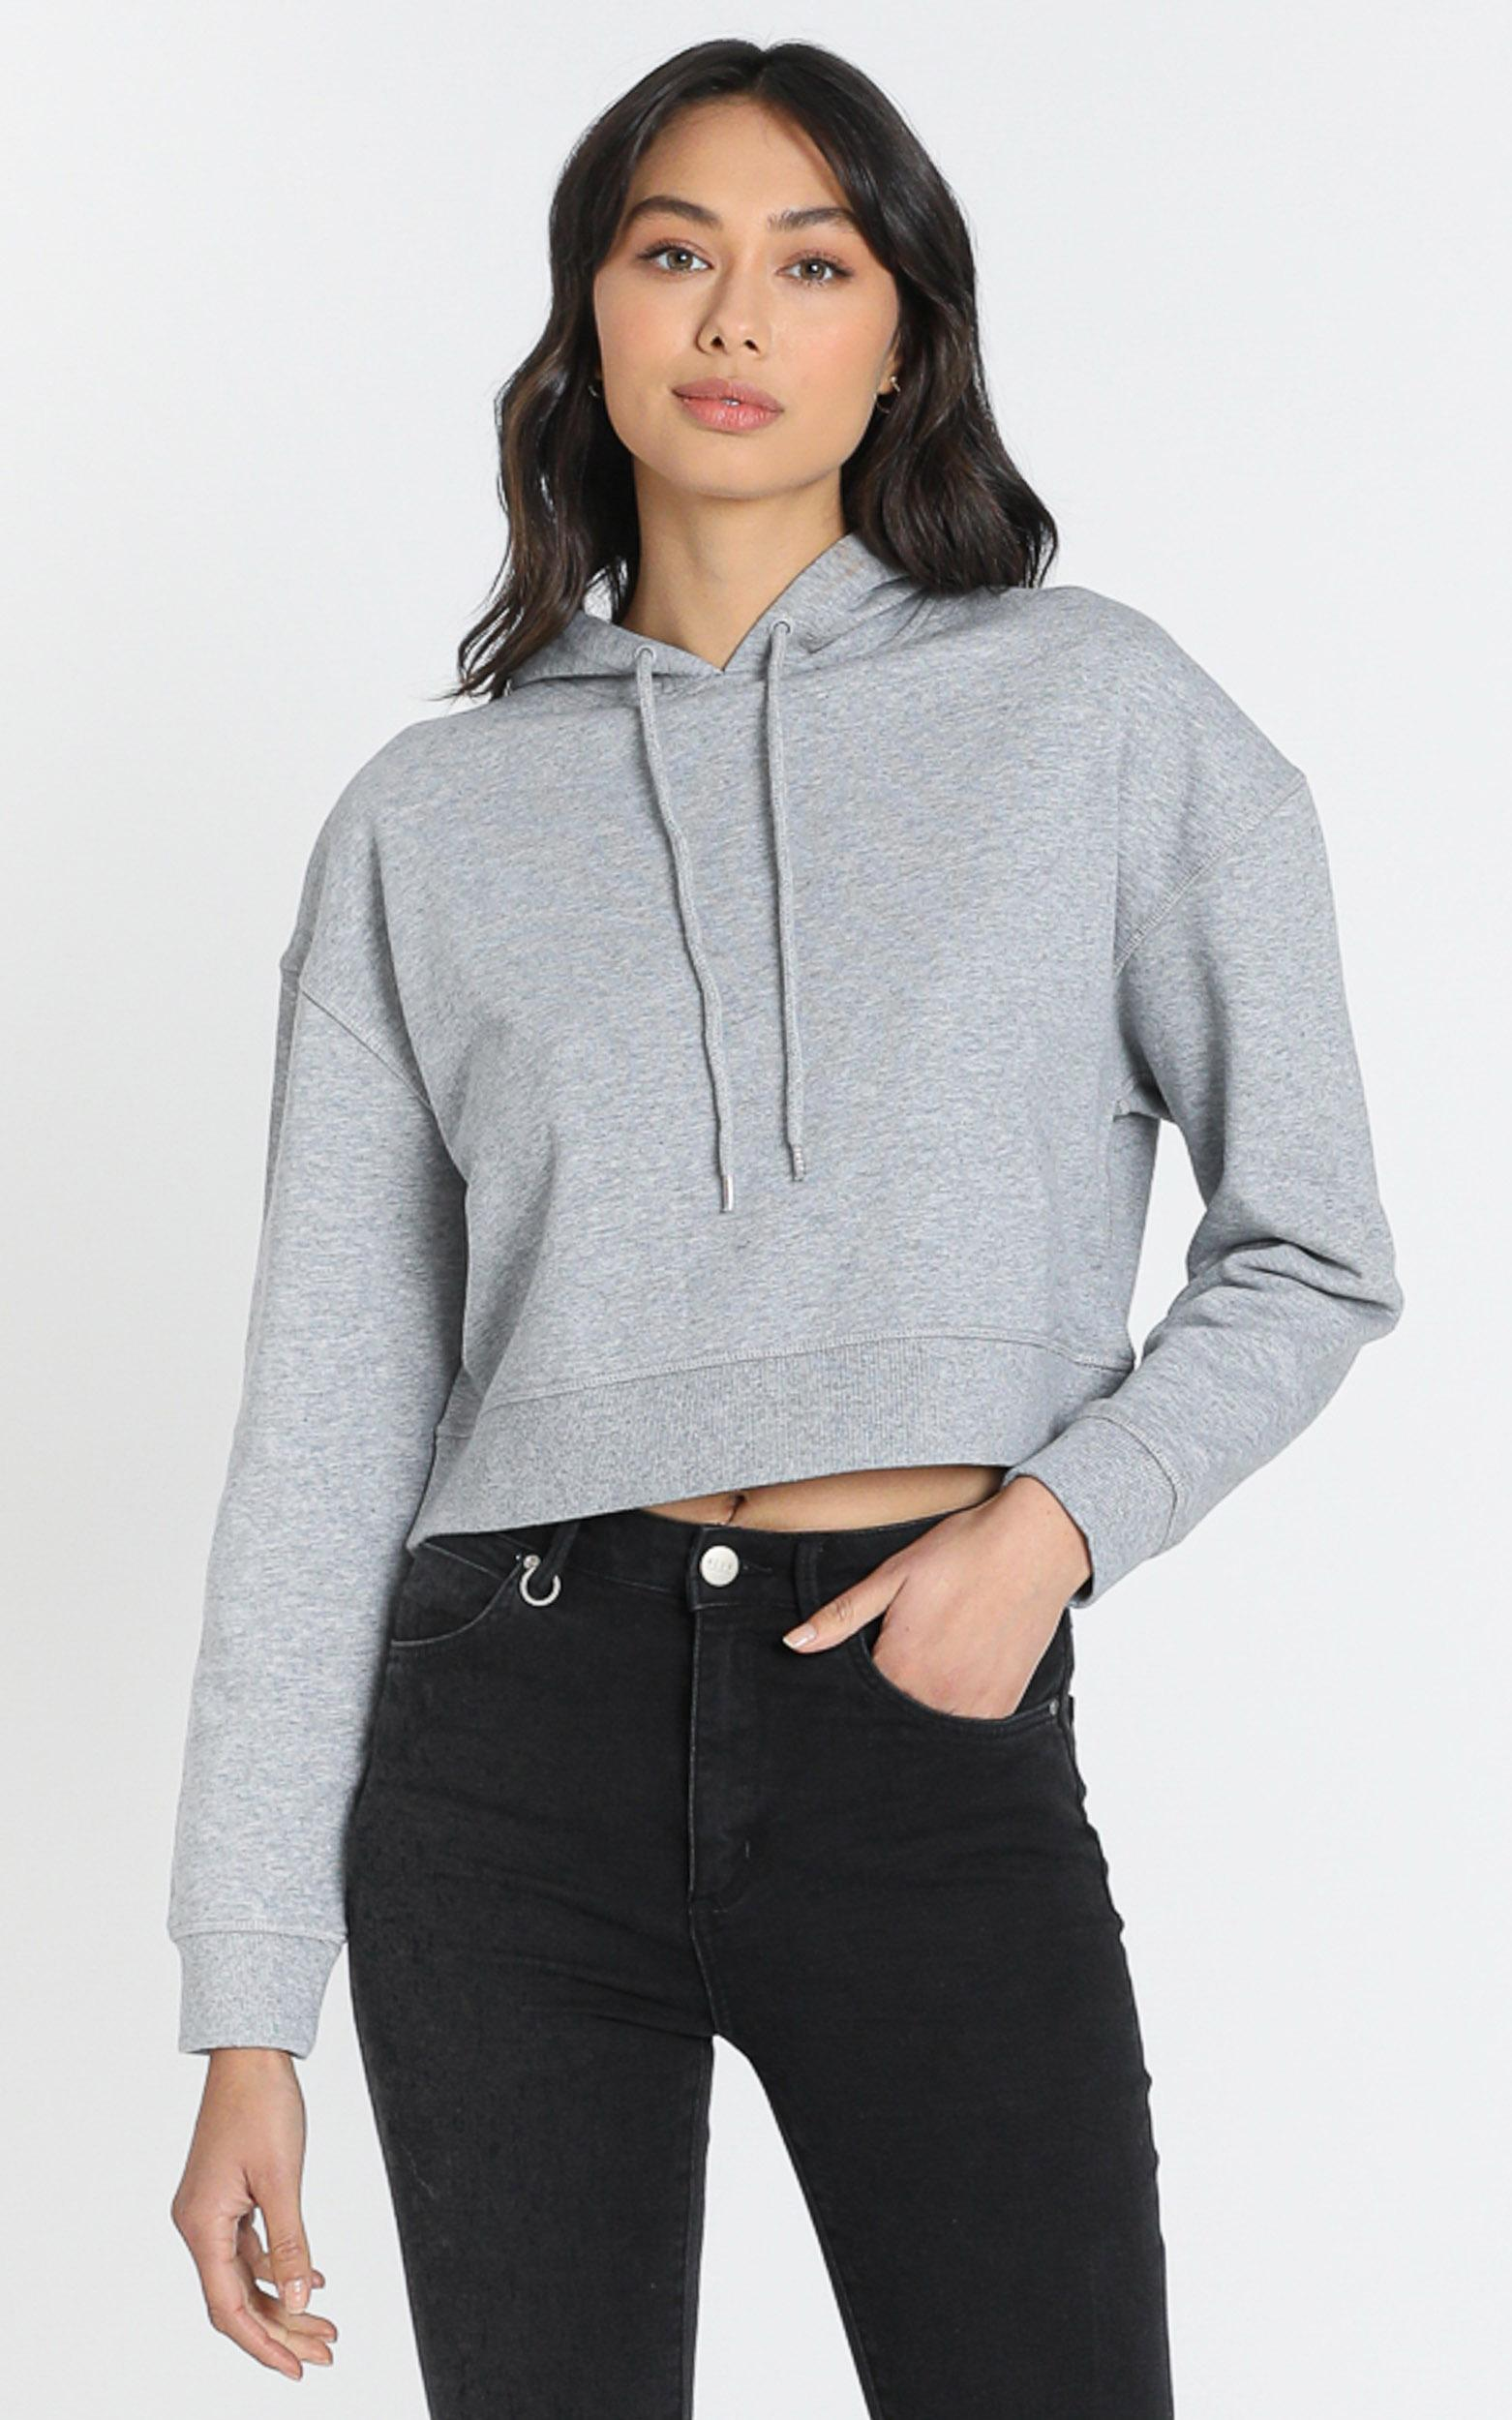 AS Colour - Crop Hood in Grey Marle - XS, Grey, hi-res image number null